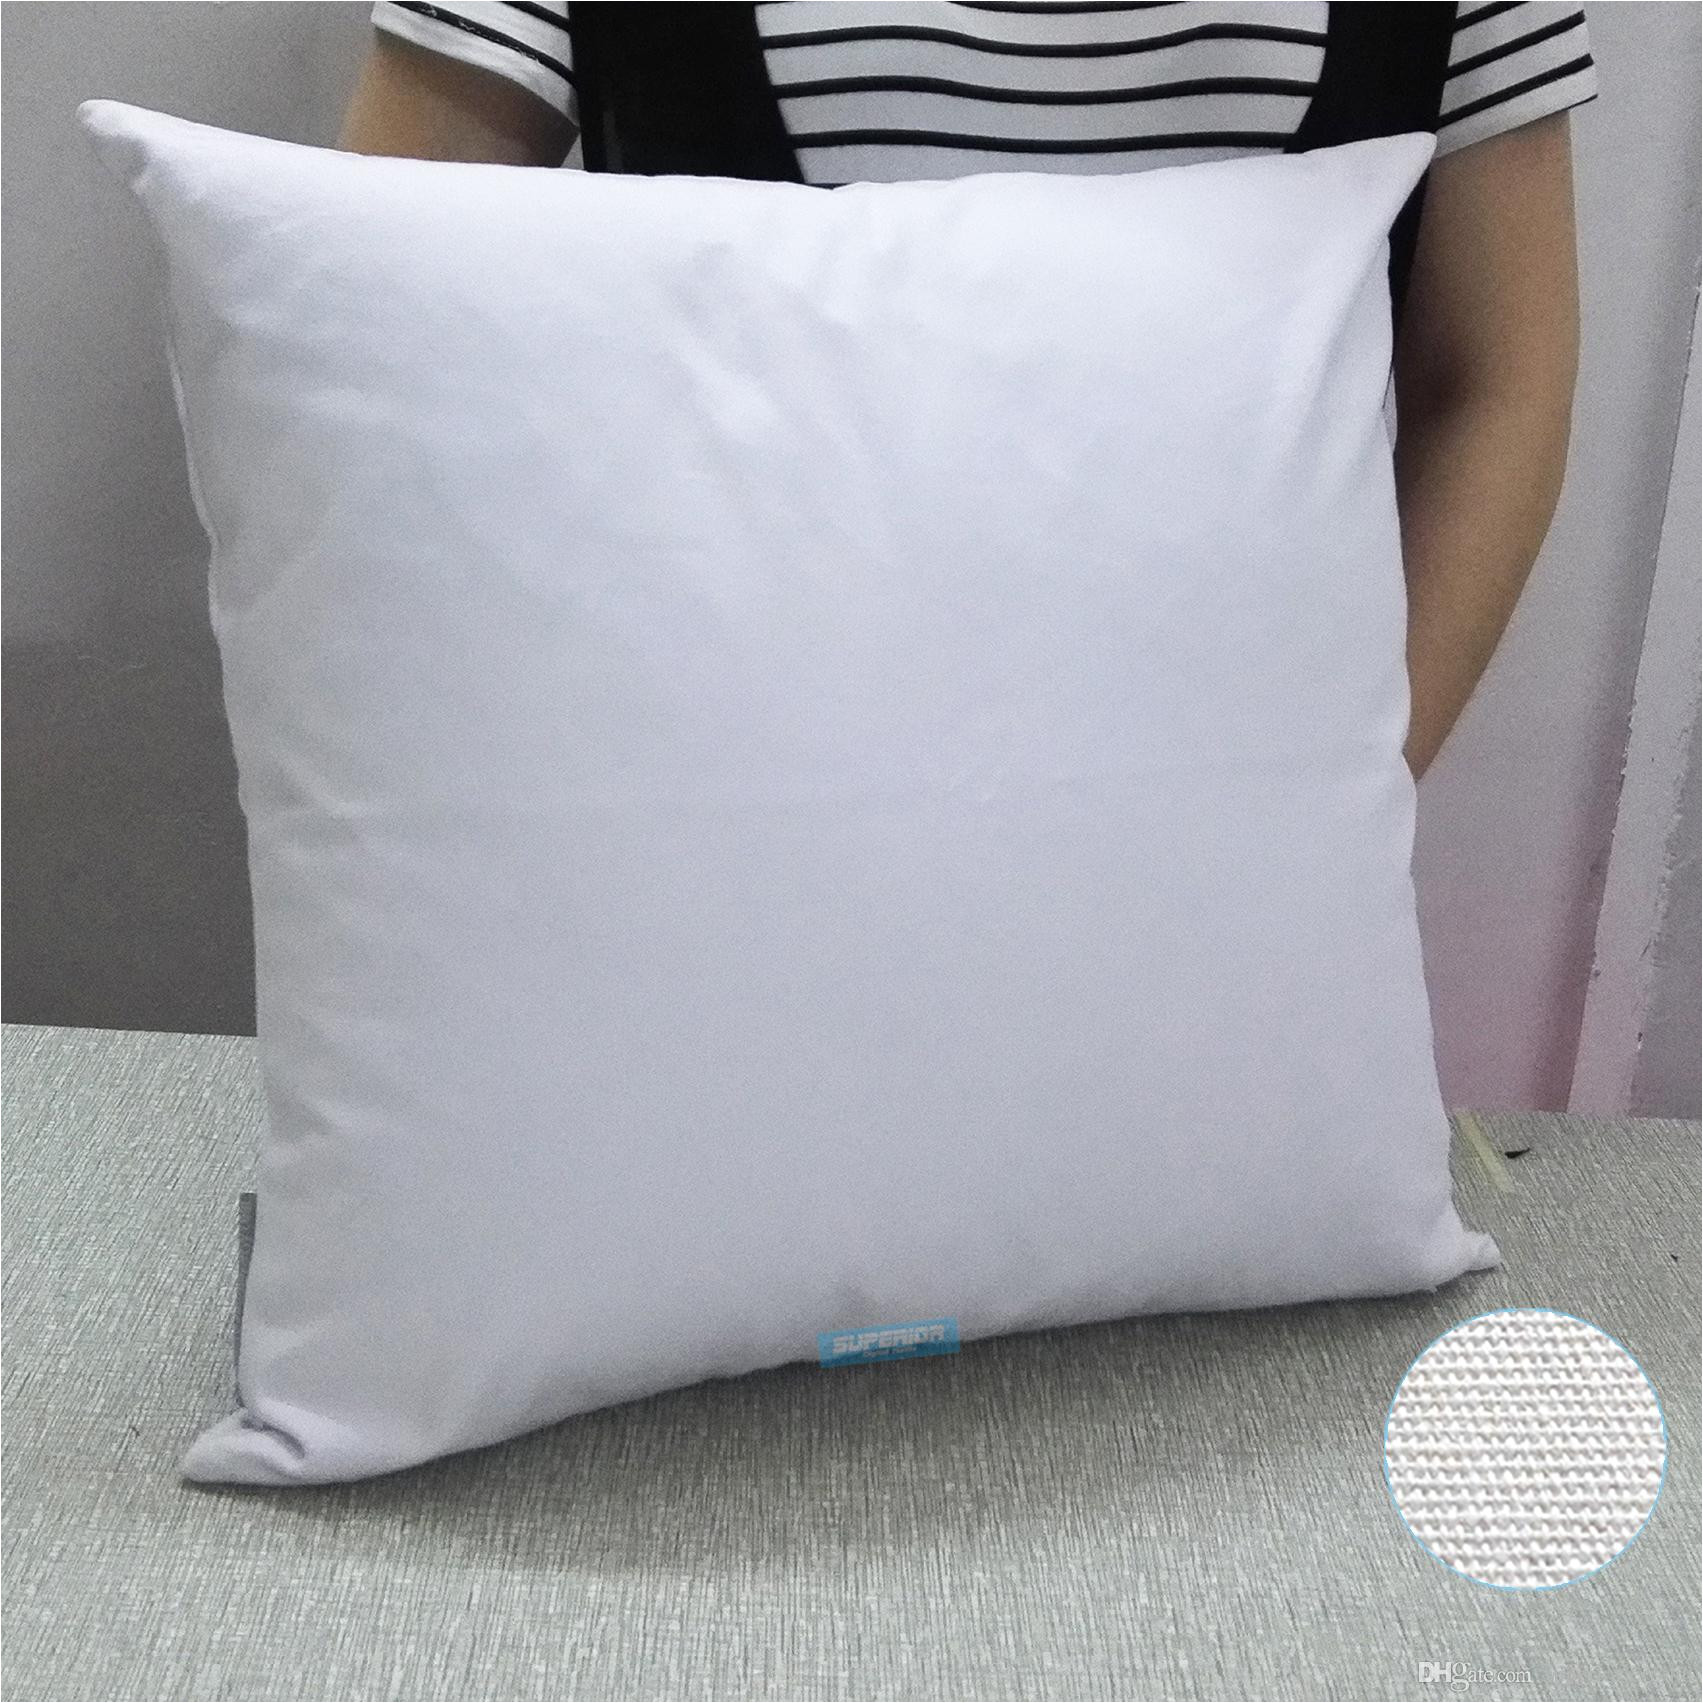 19x19 inches 8oz white or natural cotton canvas blank pillow cover clean surface perfect for stencils painting embroidery htv patio furniture seat